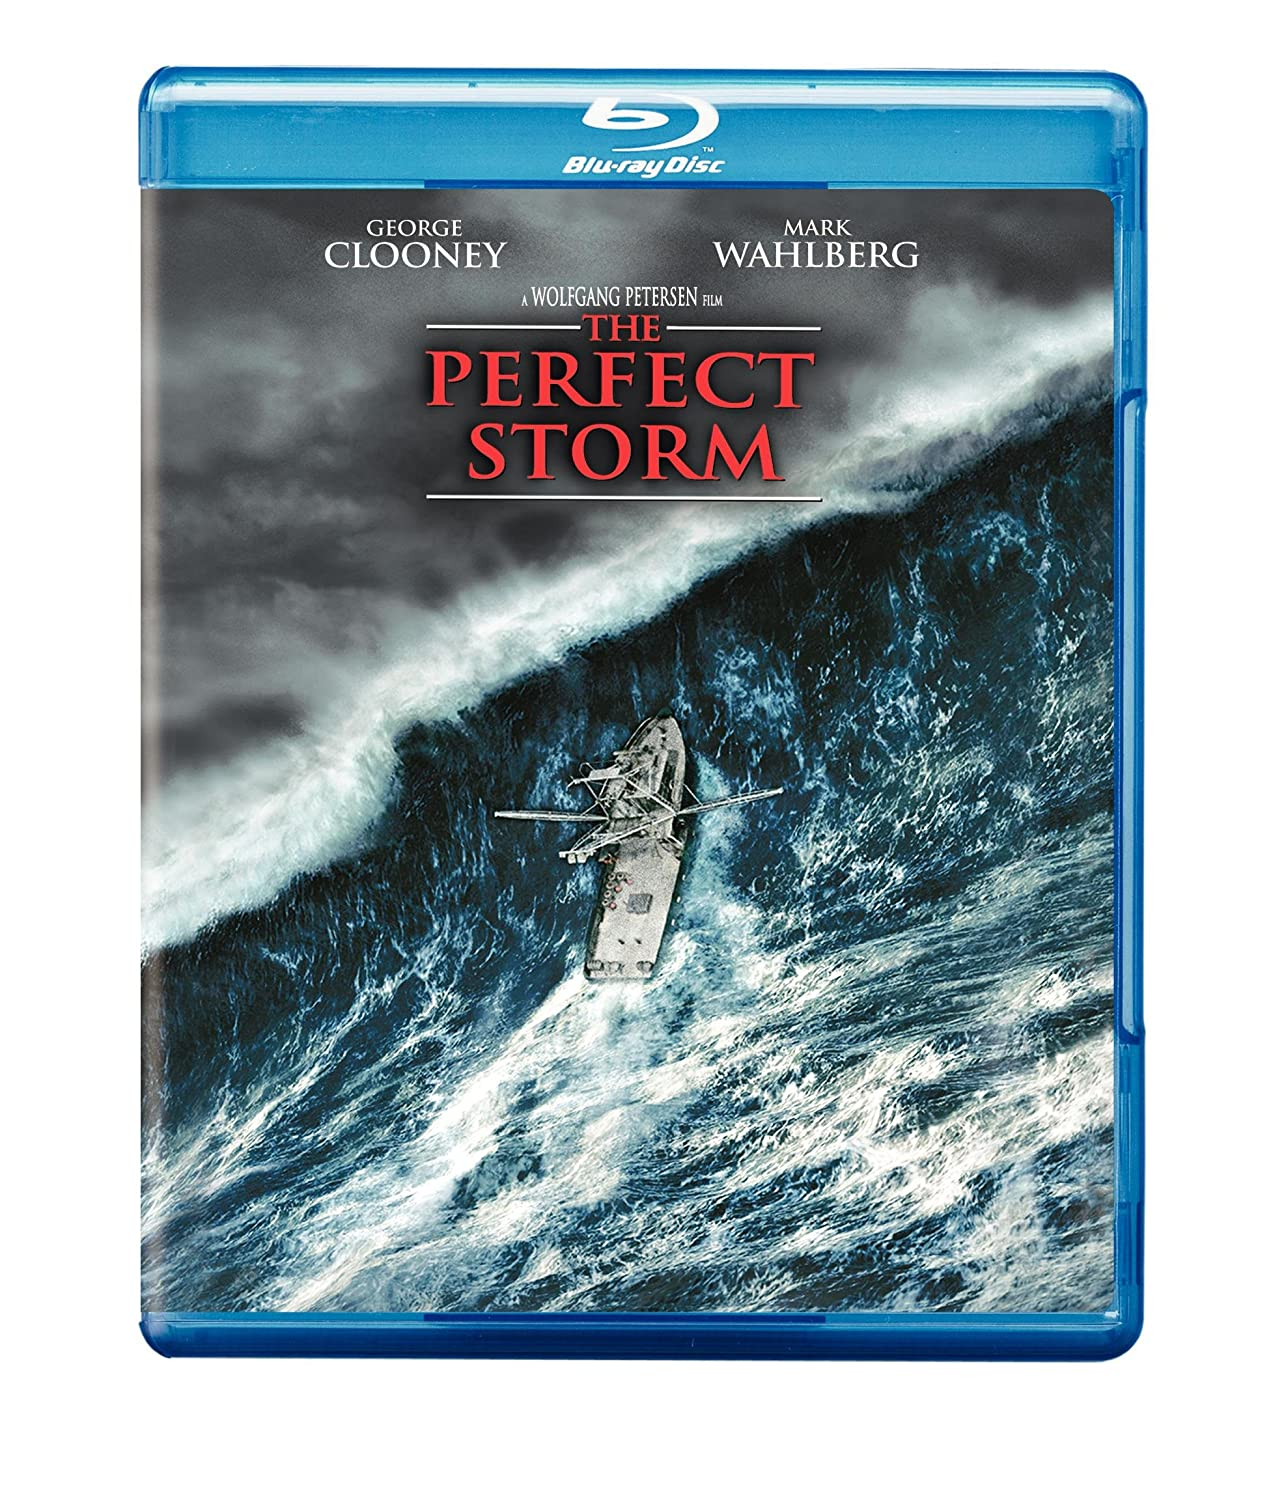 Amazon Com The Perfect Storm Blu Ray George Clooney Mark Wahlberg Mark Wahlberg Wolfgang Petersen Movies Tv